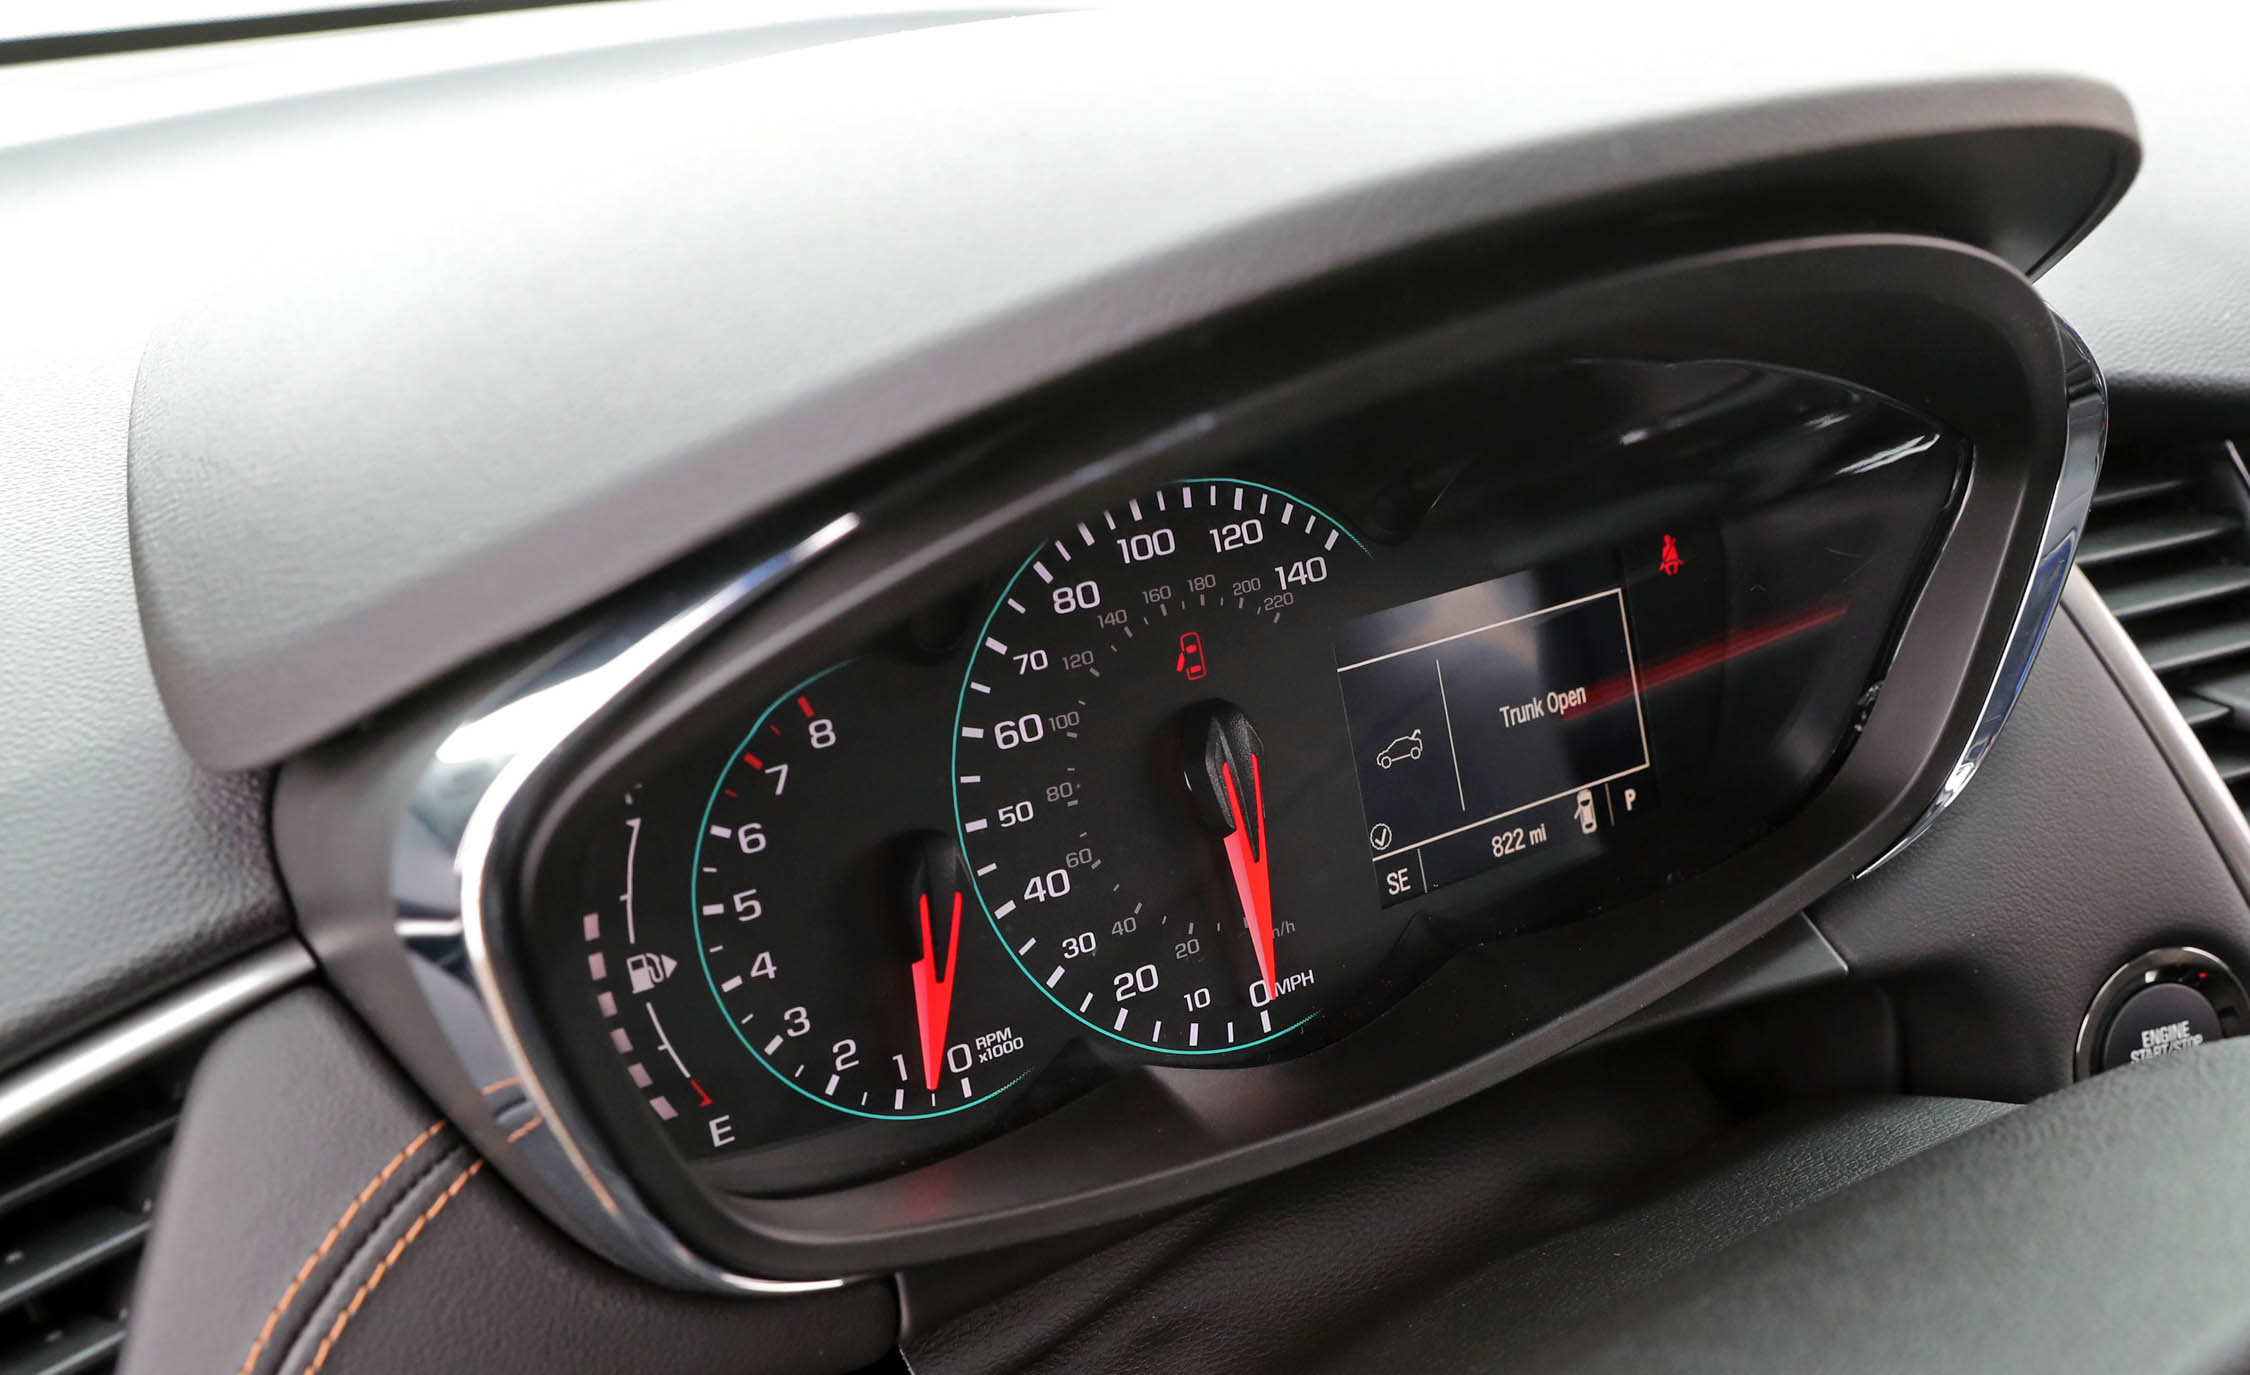 2017 Chevrolet Trax Interior View Speedometer (Photo 31 of 47)